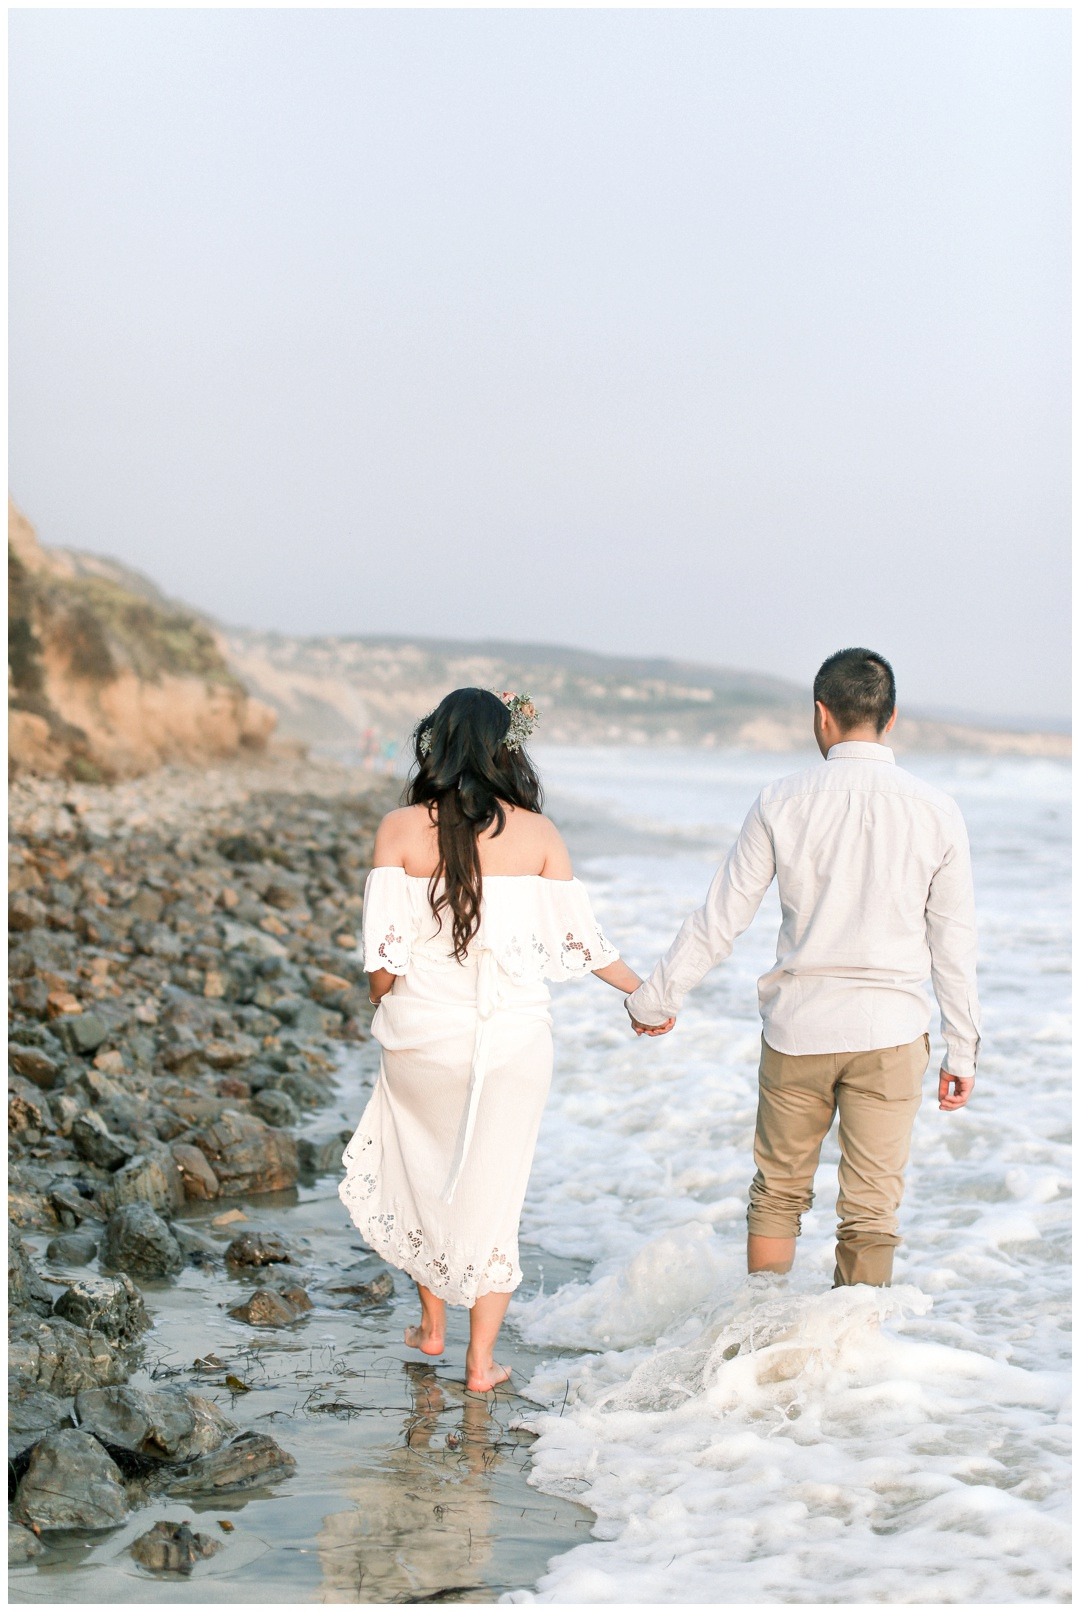 Newport_Beach_Maternity_Photographer_Newport_Beach_Newborn_Photography_Orange_County_Photography_Cori_Kleckner_Photography_Orange_County_Beach_baby_bump_Photography_Kelly_Chao__1893.jpg